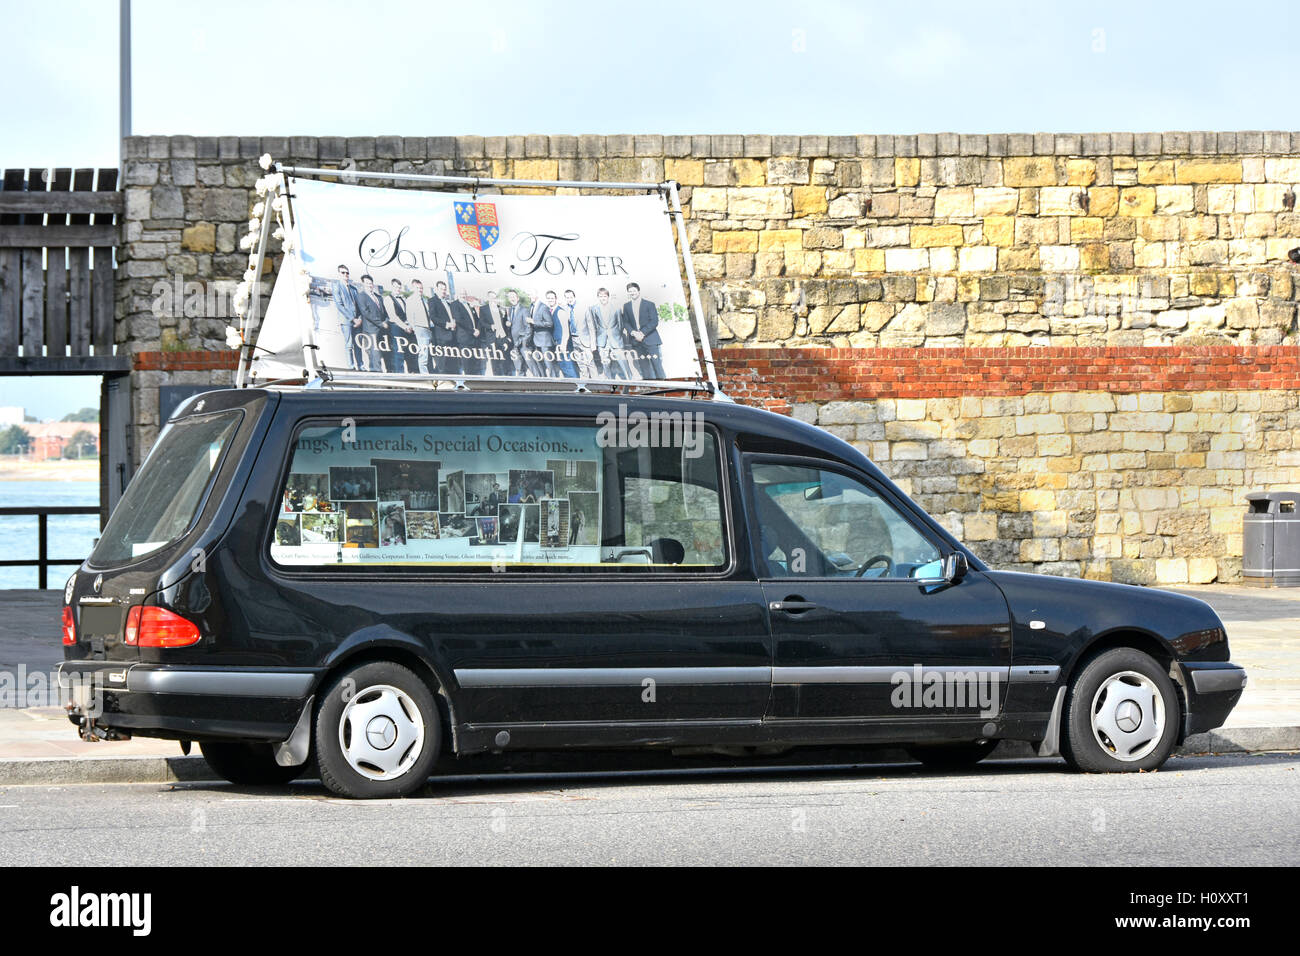 Portsmouth England UK Hearse with adverts to promote events that can be hosted at the adjacent Tudor 'Square - Stock Image